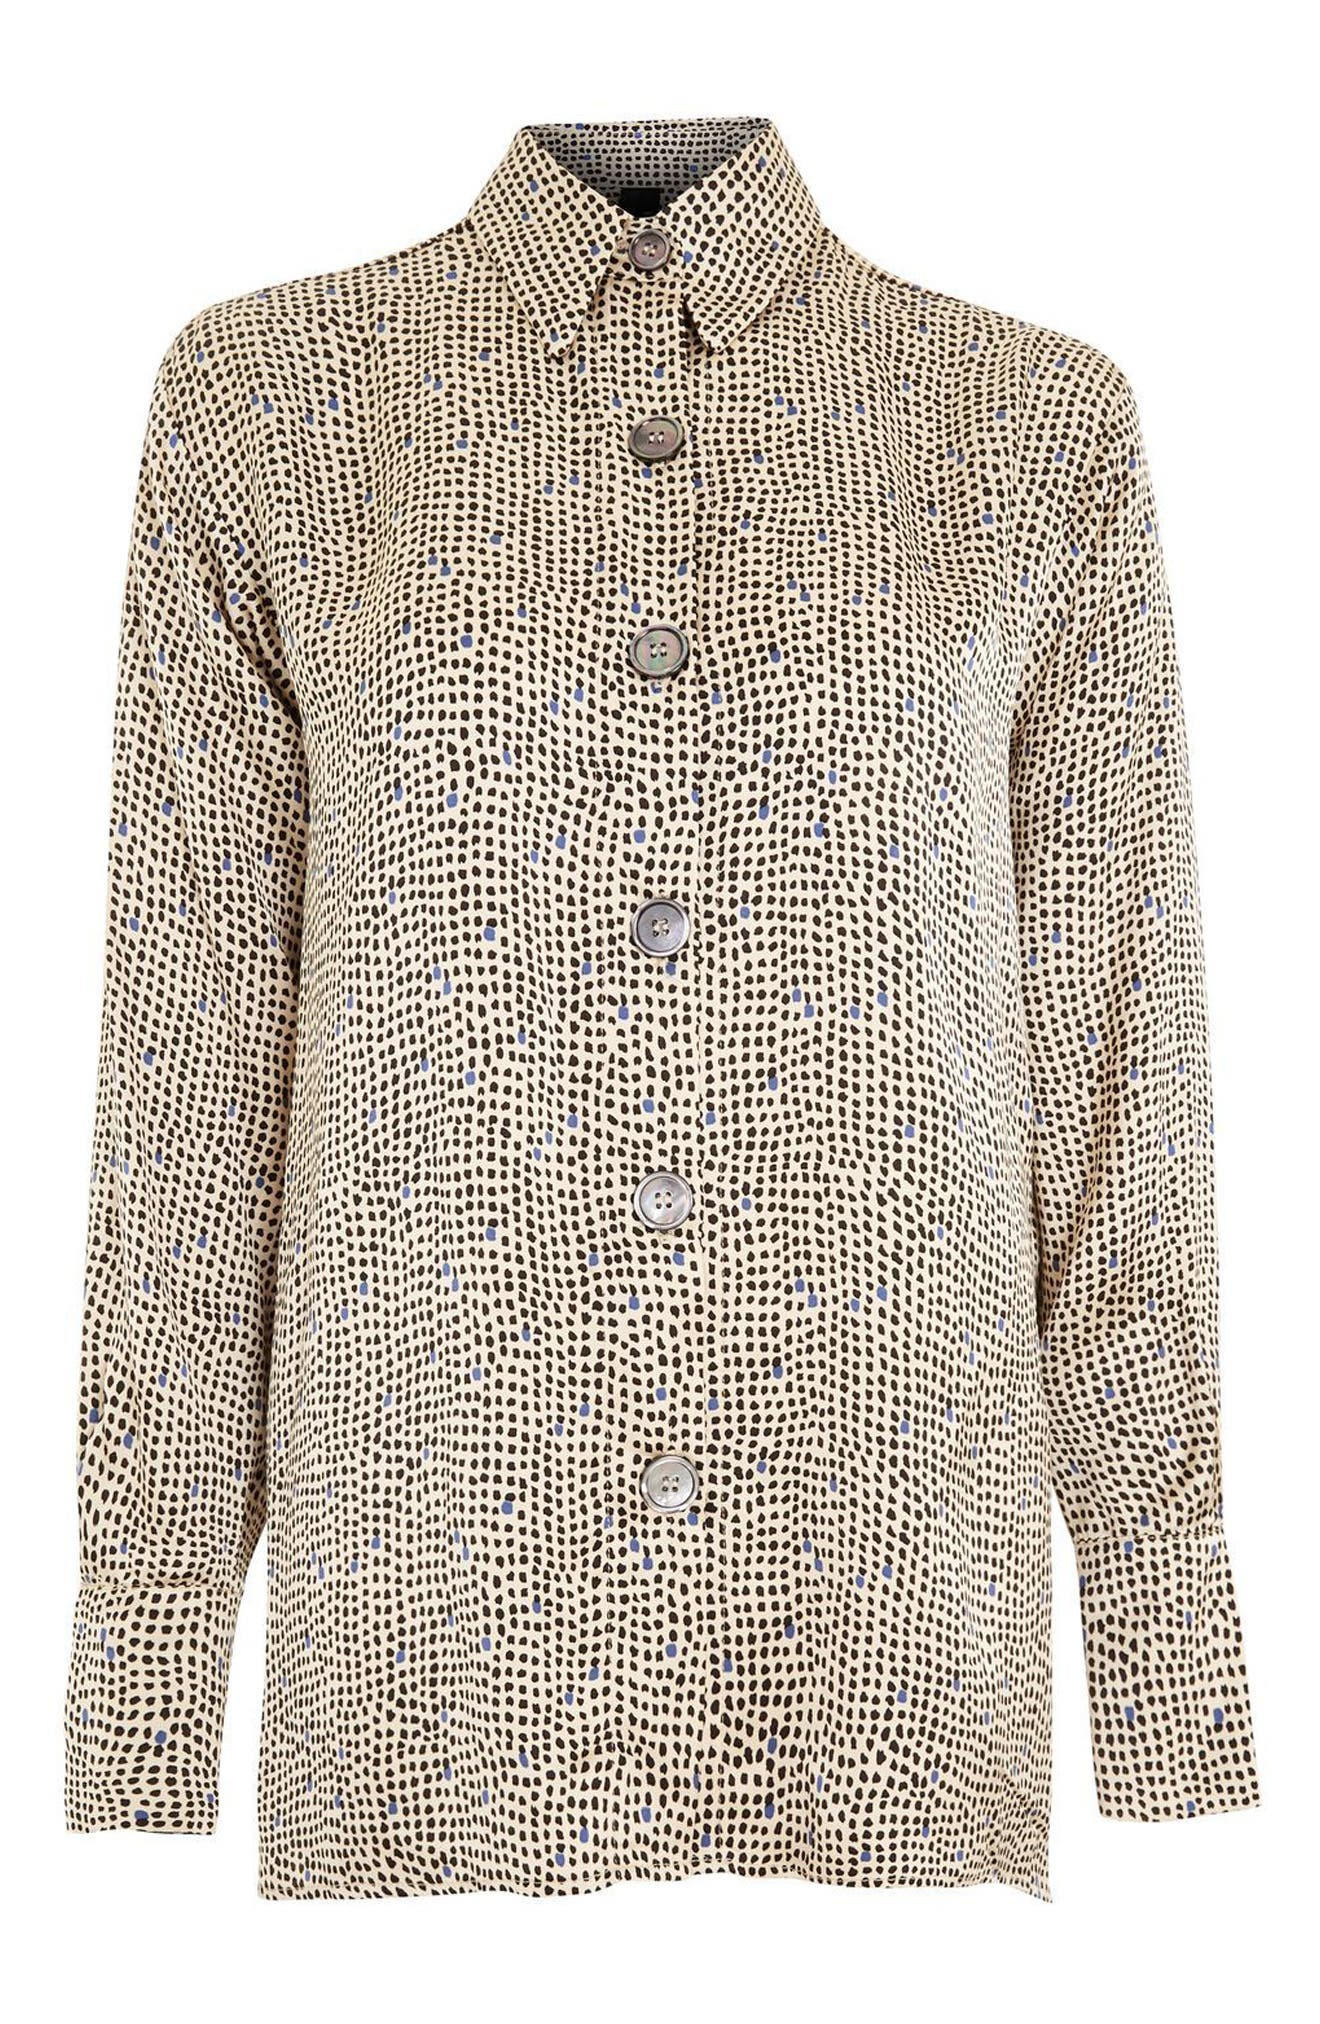 Main Image - Topshop Boutique Mini Spot Shirt